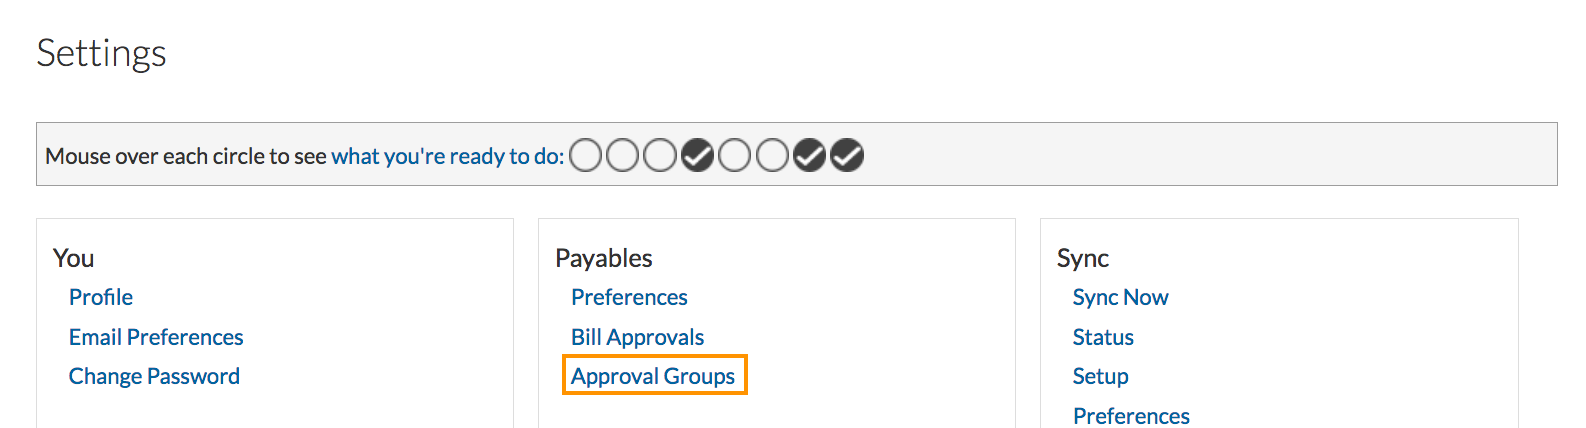 Approval_Groups_link.png